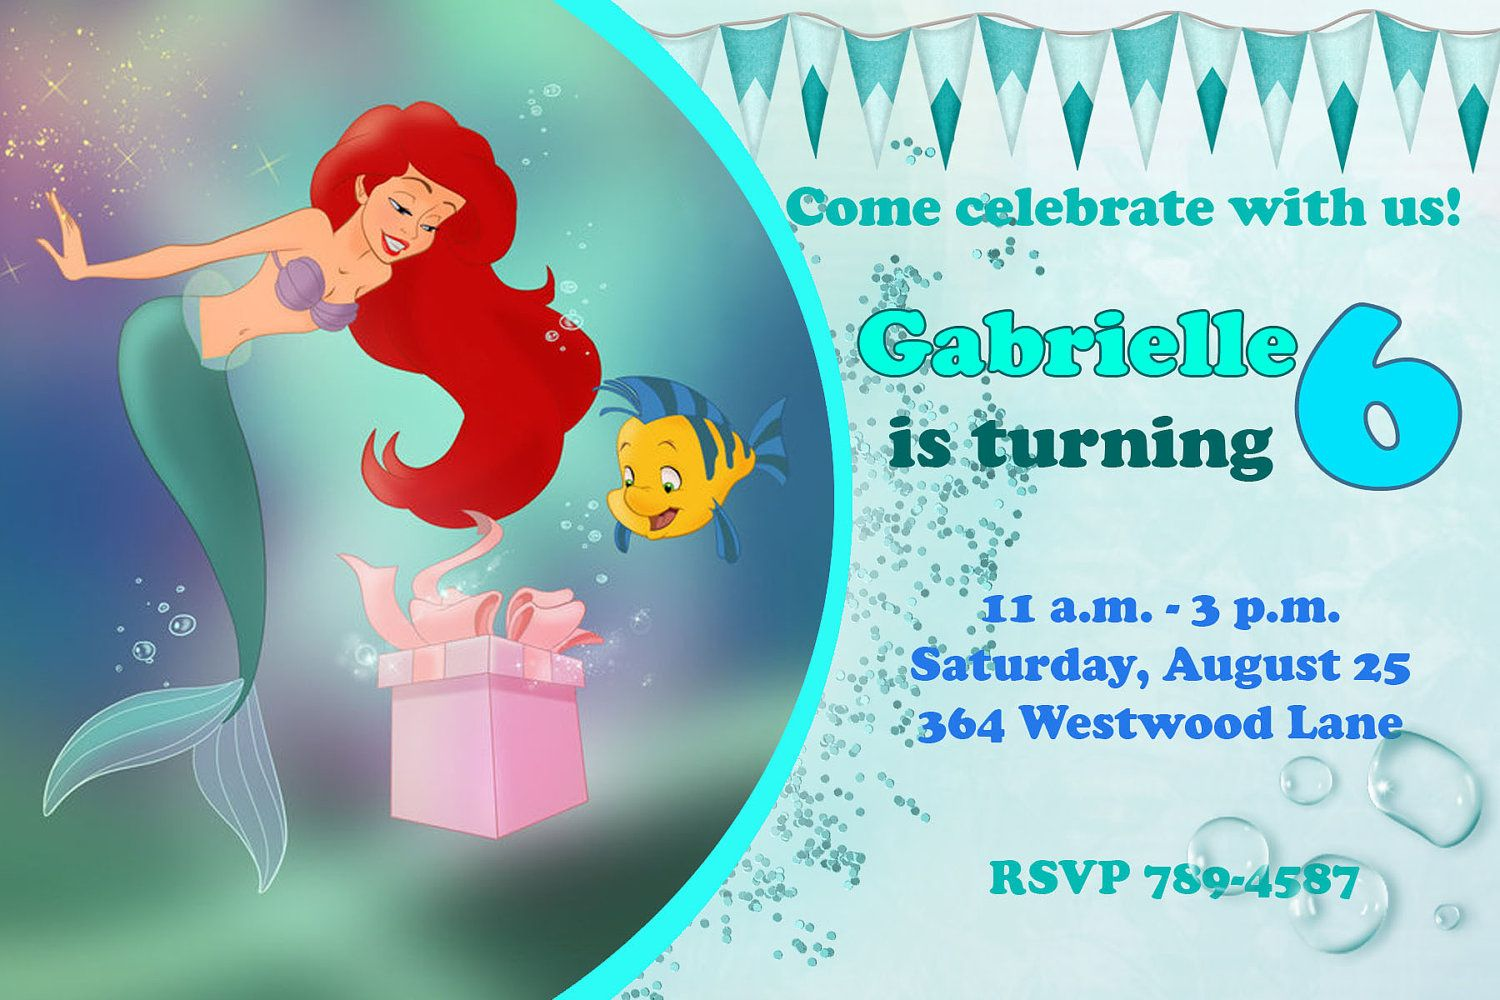 Ariel the little mermaid happy birthday party invitation printable ariel the little mermaid happy birthday party invitation printable 500 via etsy filmwisefo Choice Image